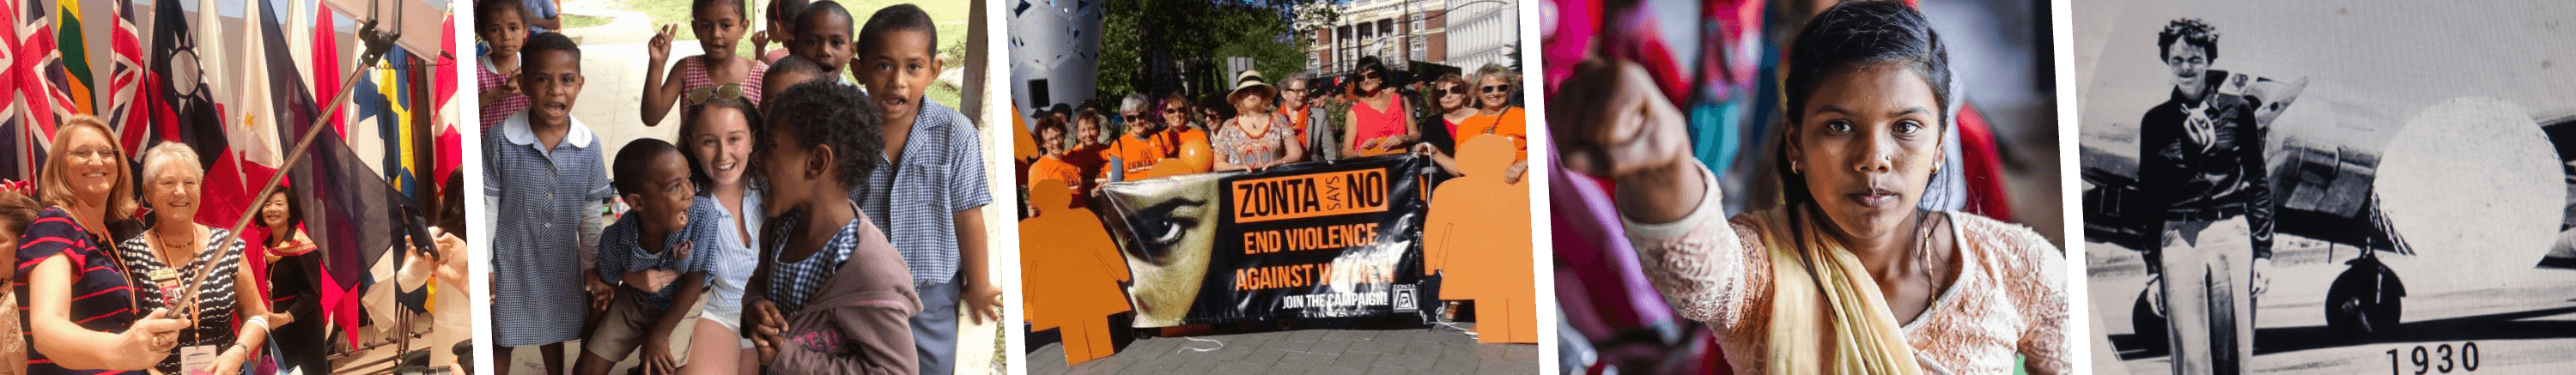 zonta-banners-2018—6